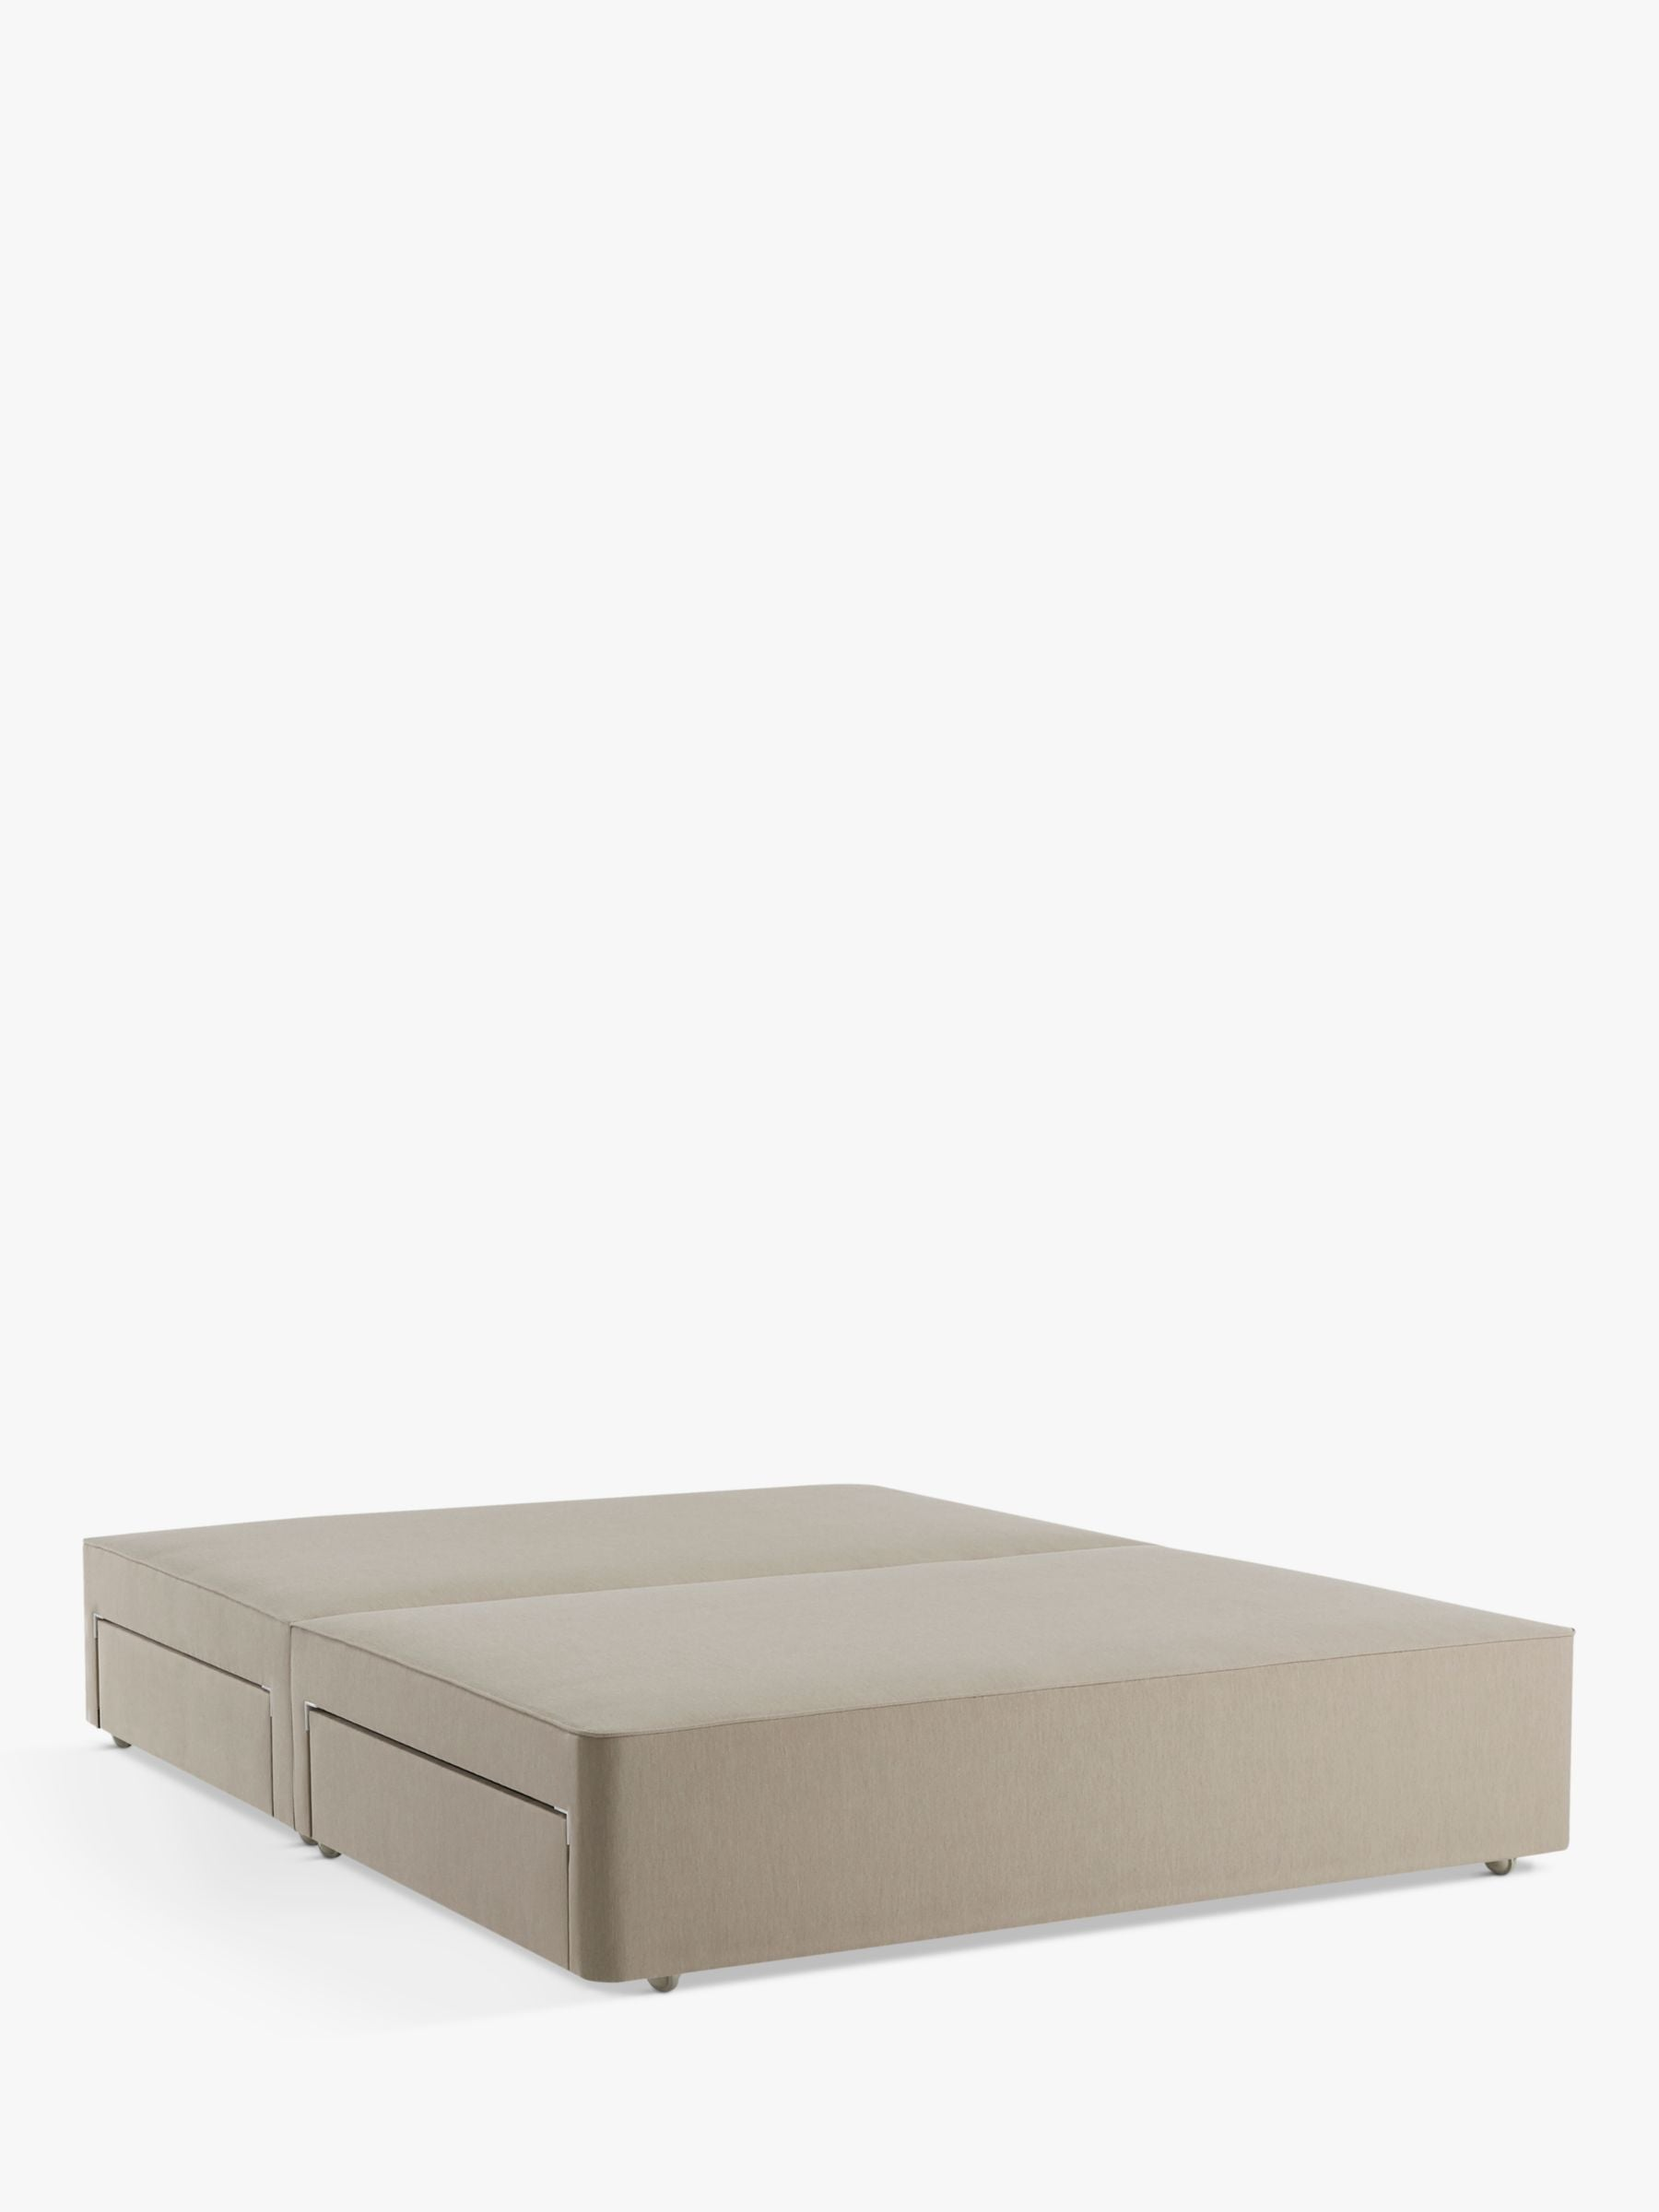 John Lewis & Partners Pocket Sprung 2500 4 Drawer Storage, Small Double Upholstered Divan Base, Canvas Stone Grey, FSC-Certified (Pine)